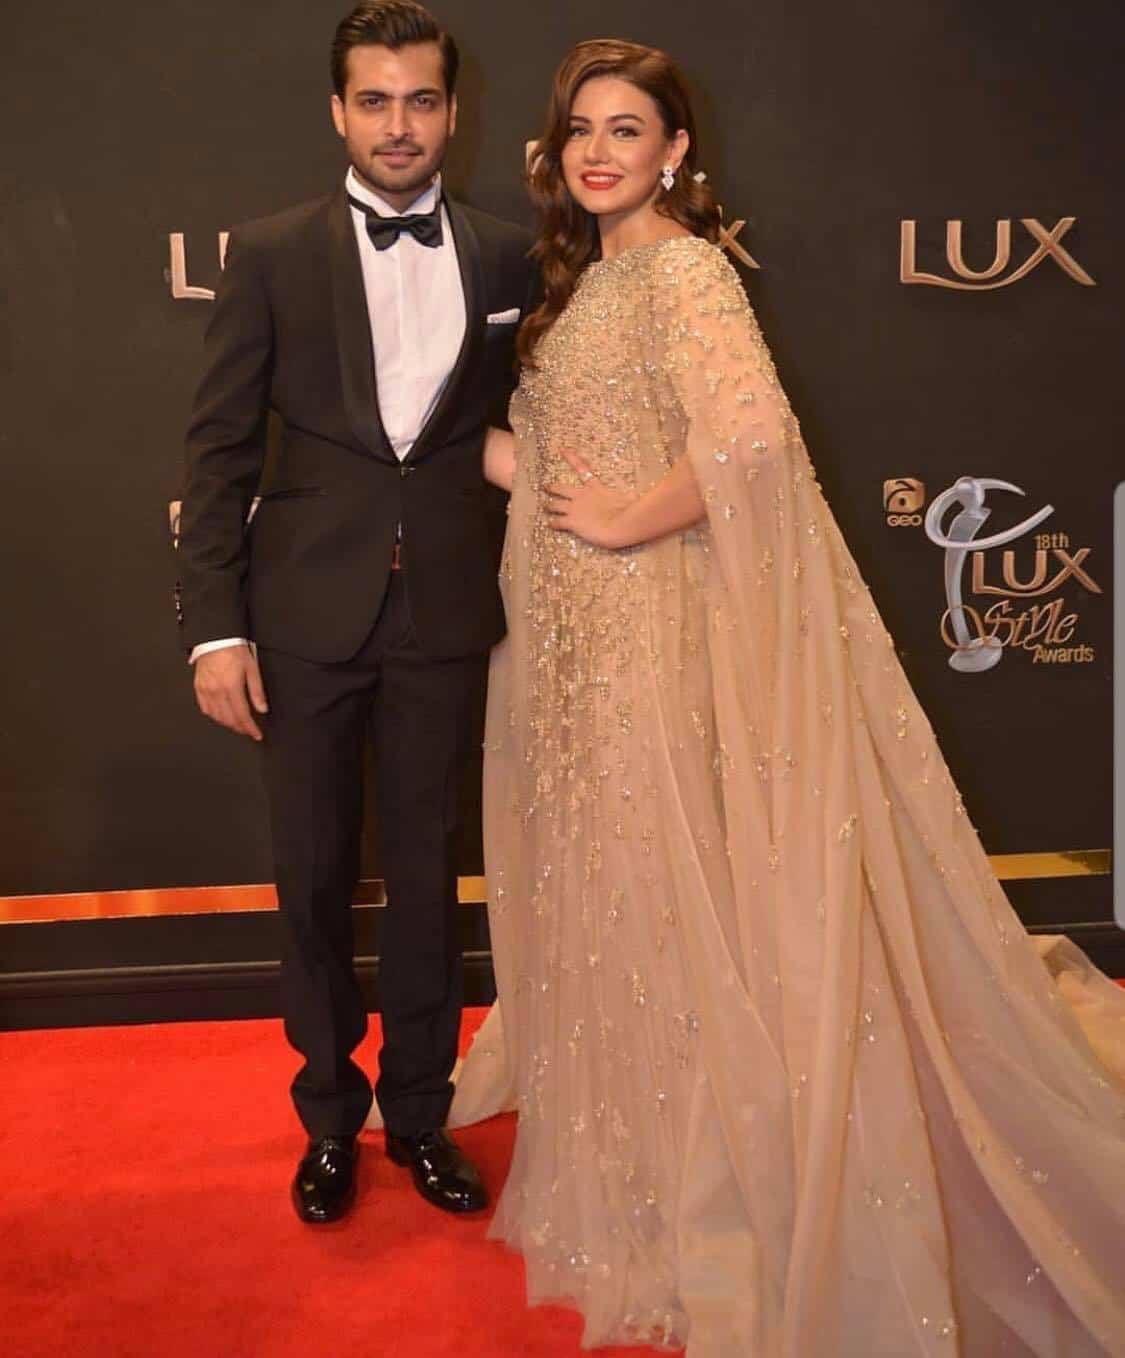 Lux Style Awards 2019 Best Dresses 6